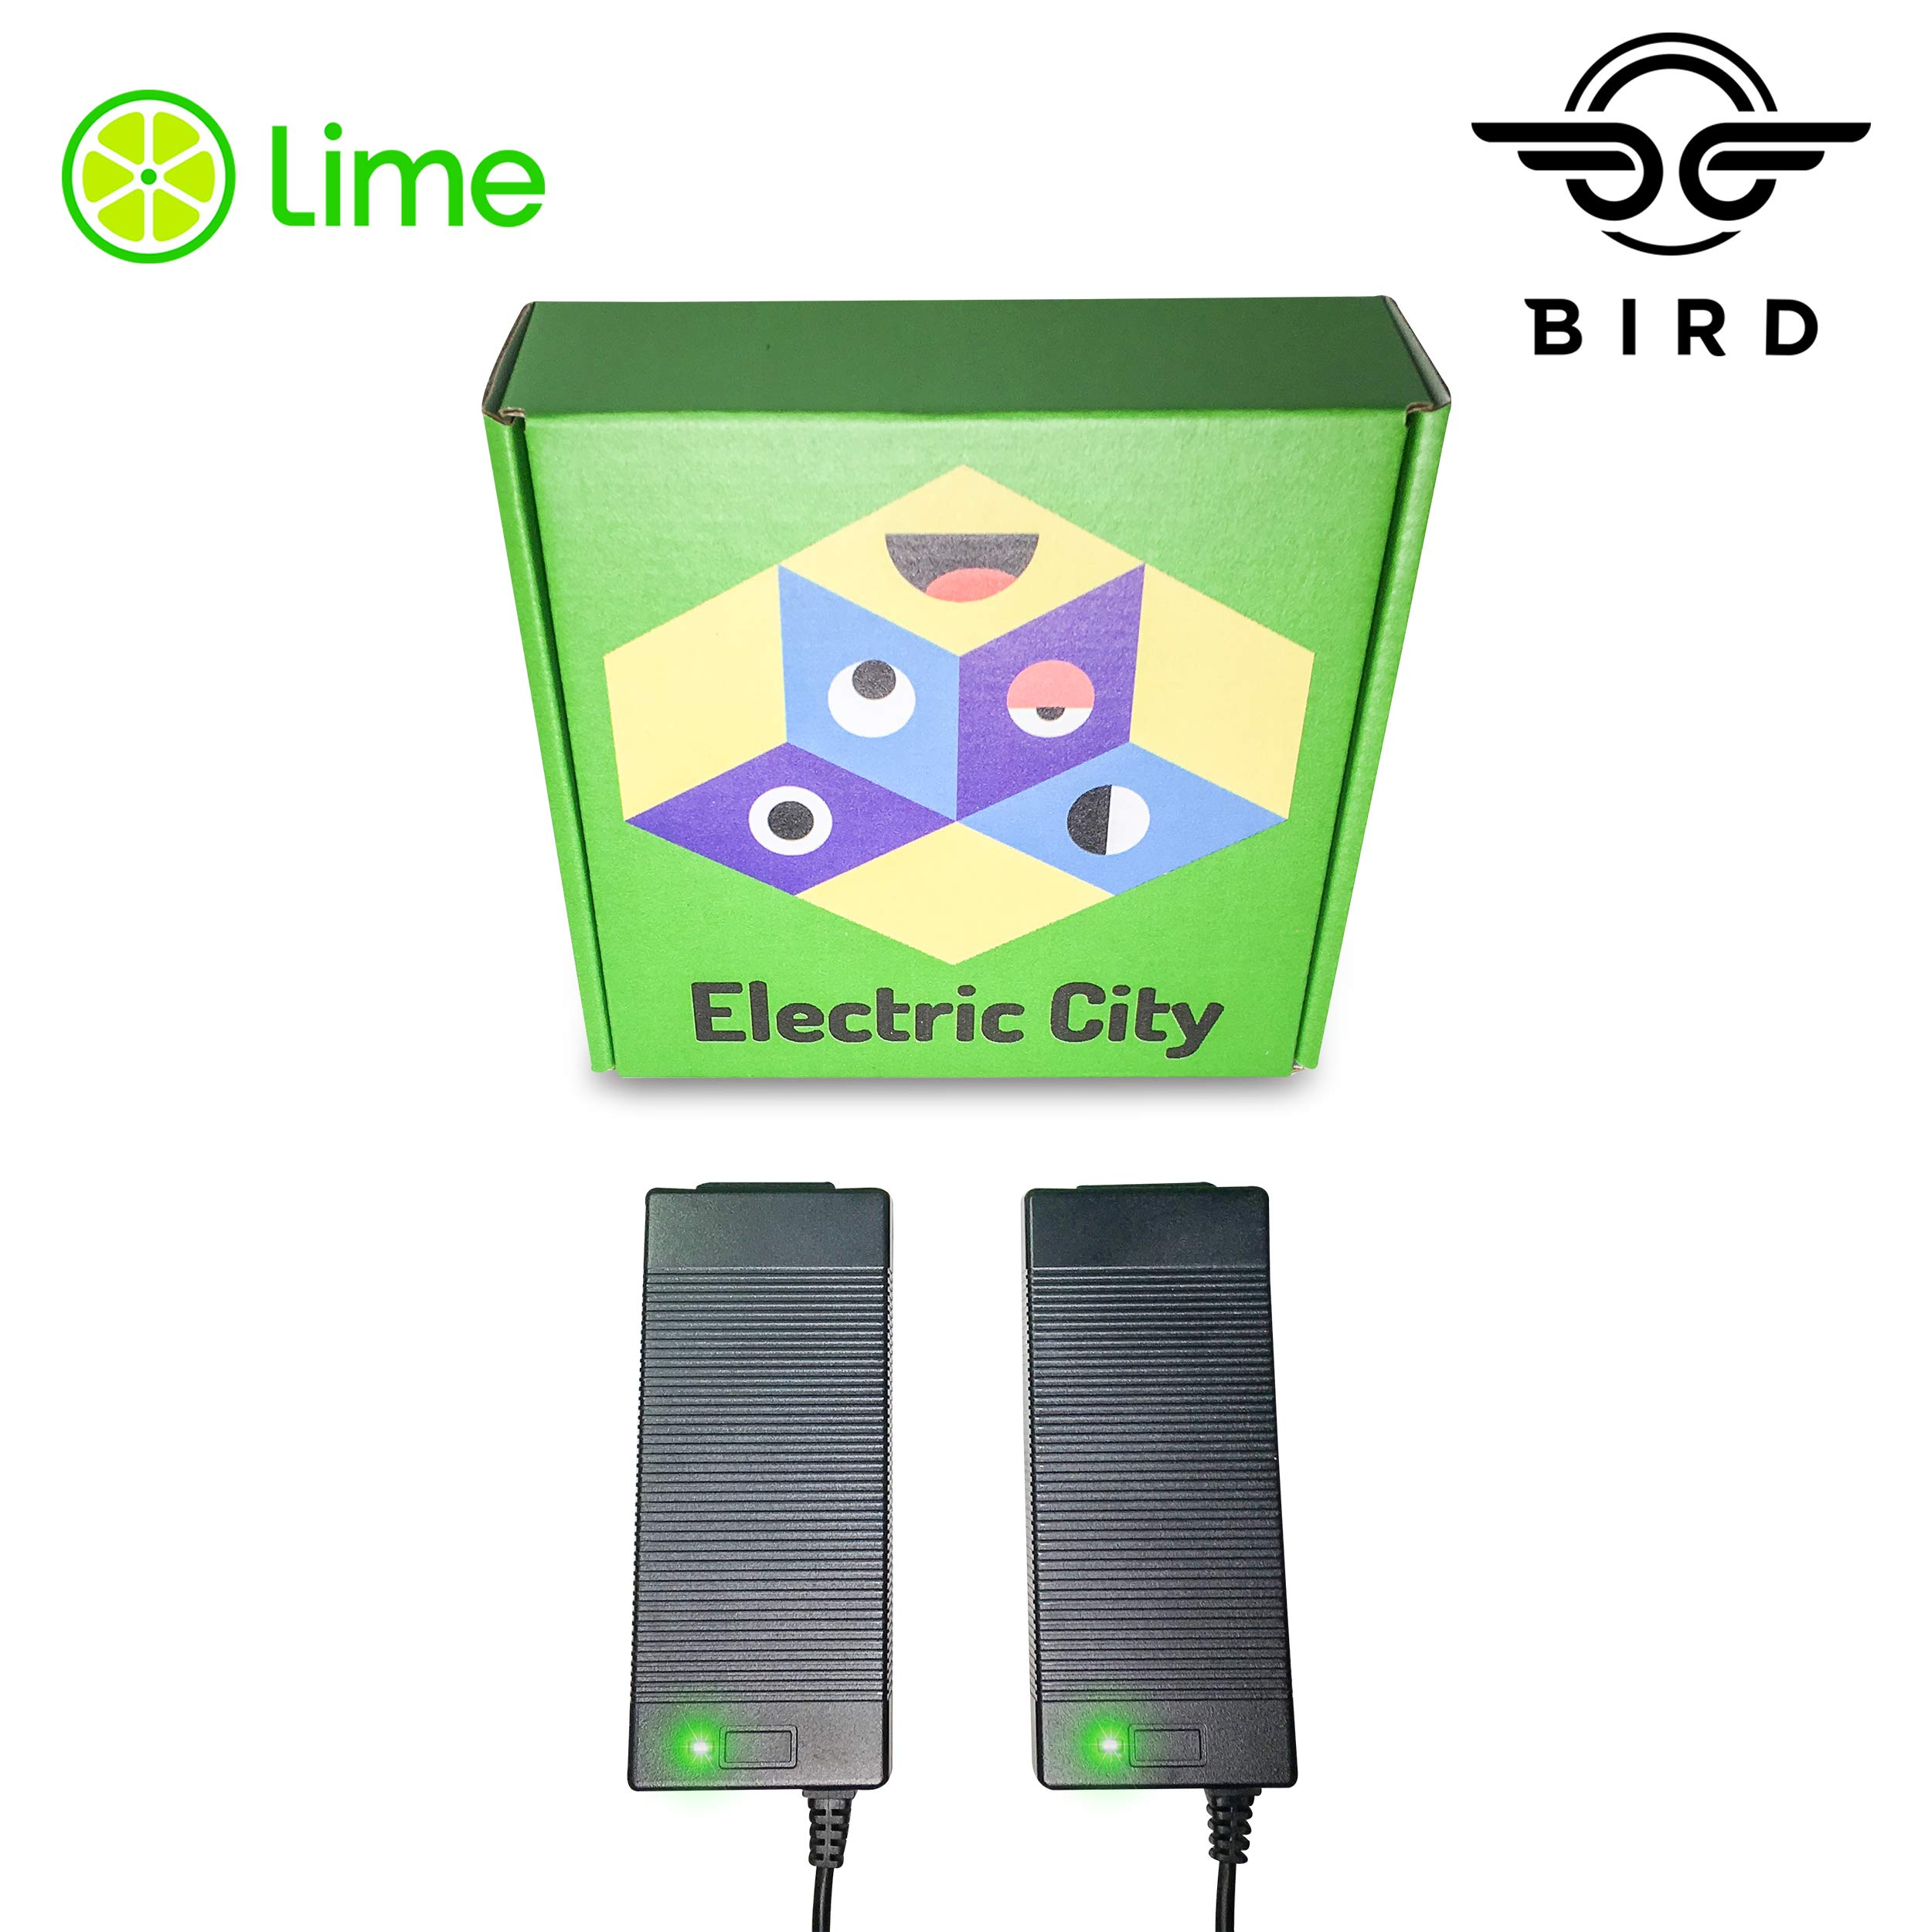 Lime Scooter Charger 2-Pack   Bird, Lime-S, Mijia M365, Segway Ninebot Es4, Es2, Es1 Compatible. by TheScooterLife